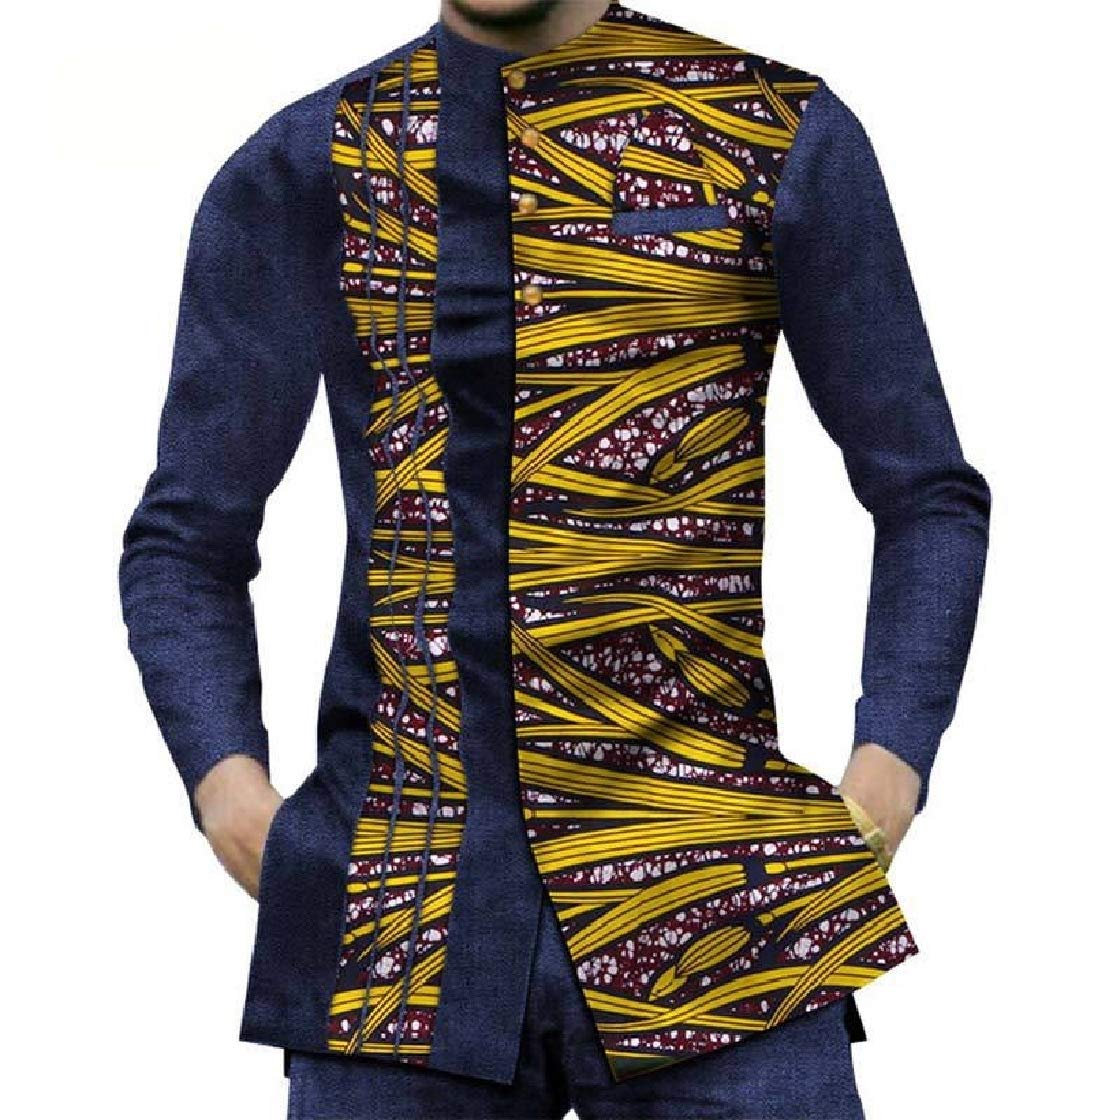 YUNY Men African Style Stand Collar Long Sleeve Patchwork Tops Shirts 6 2XL